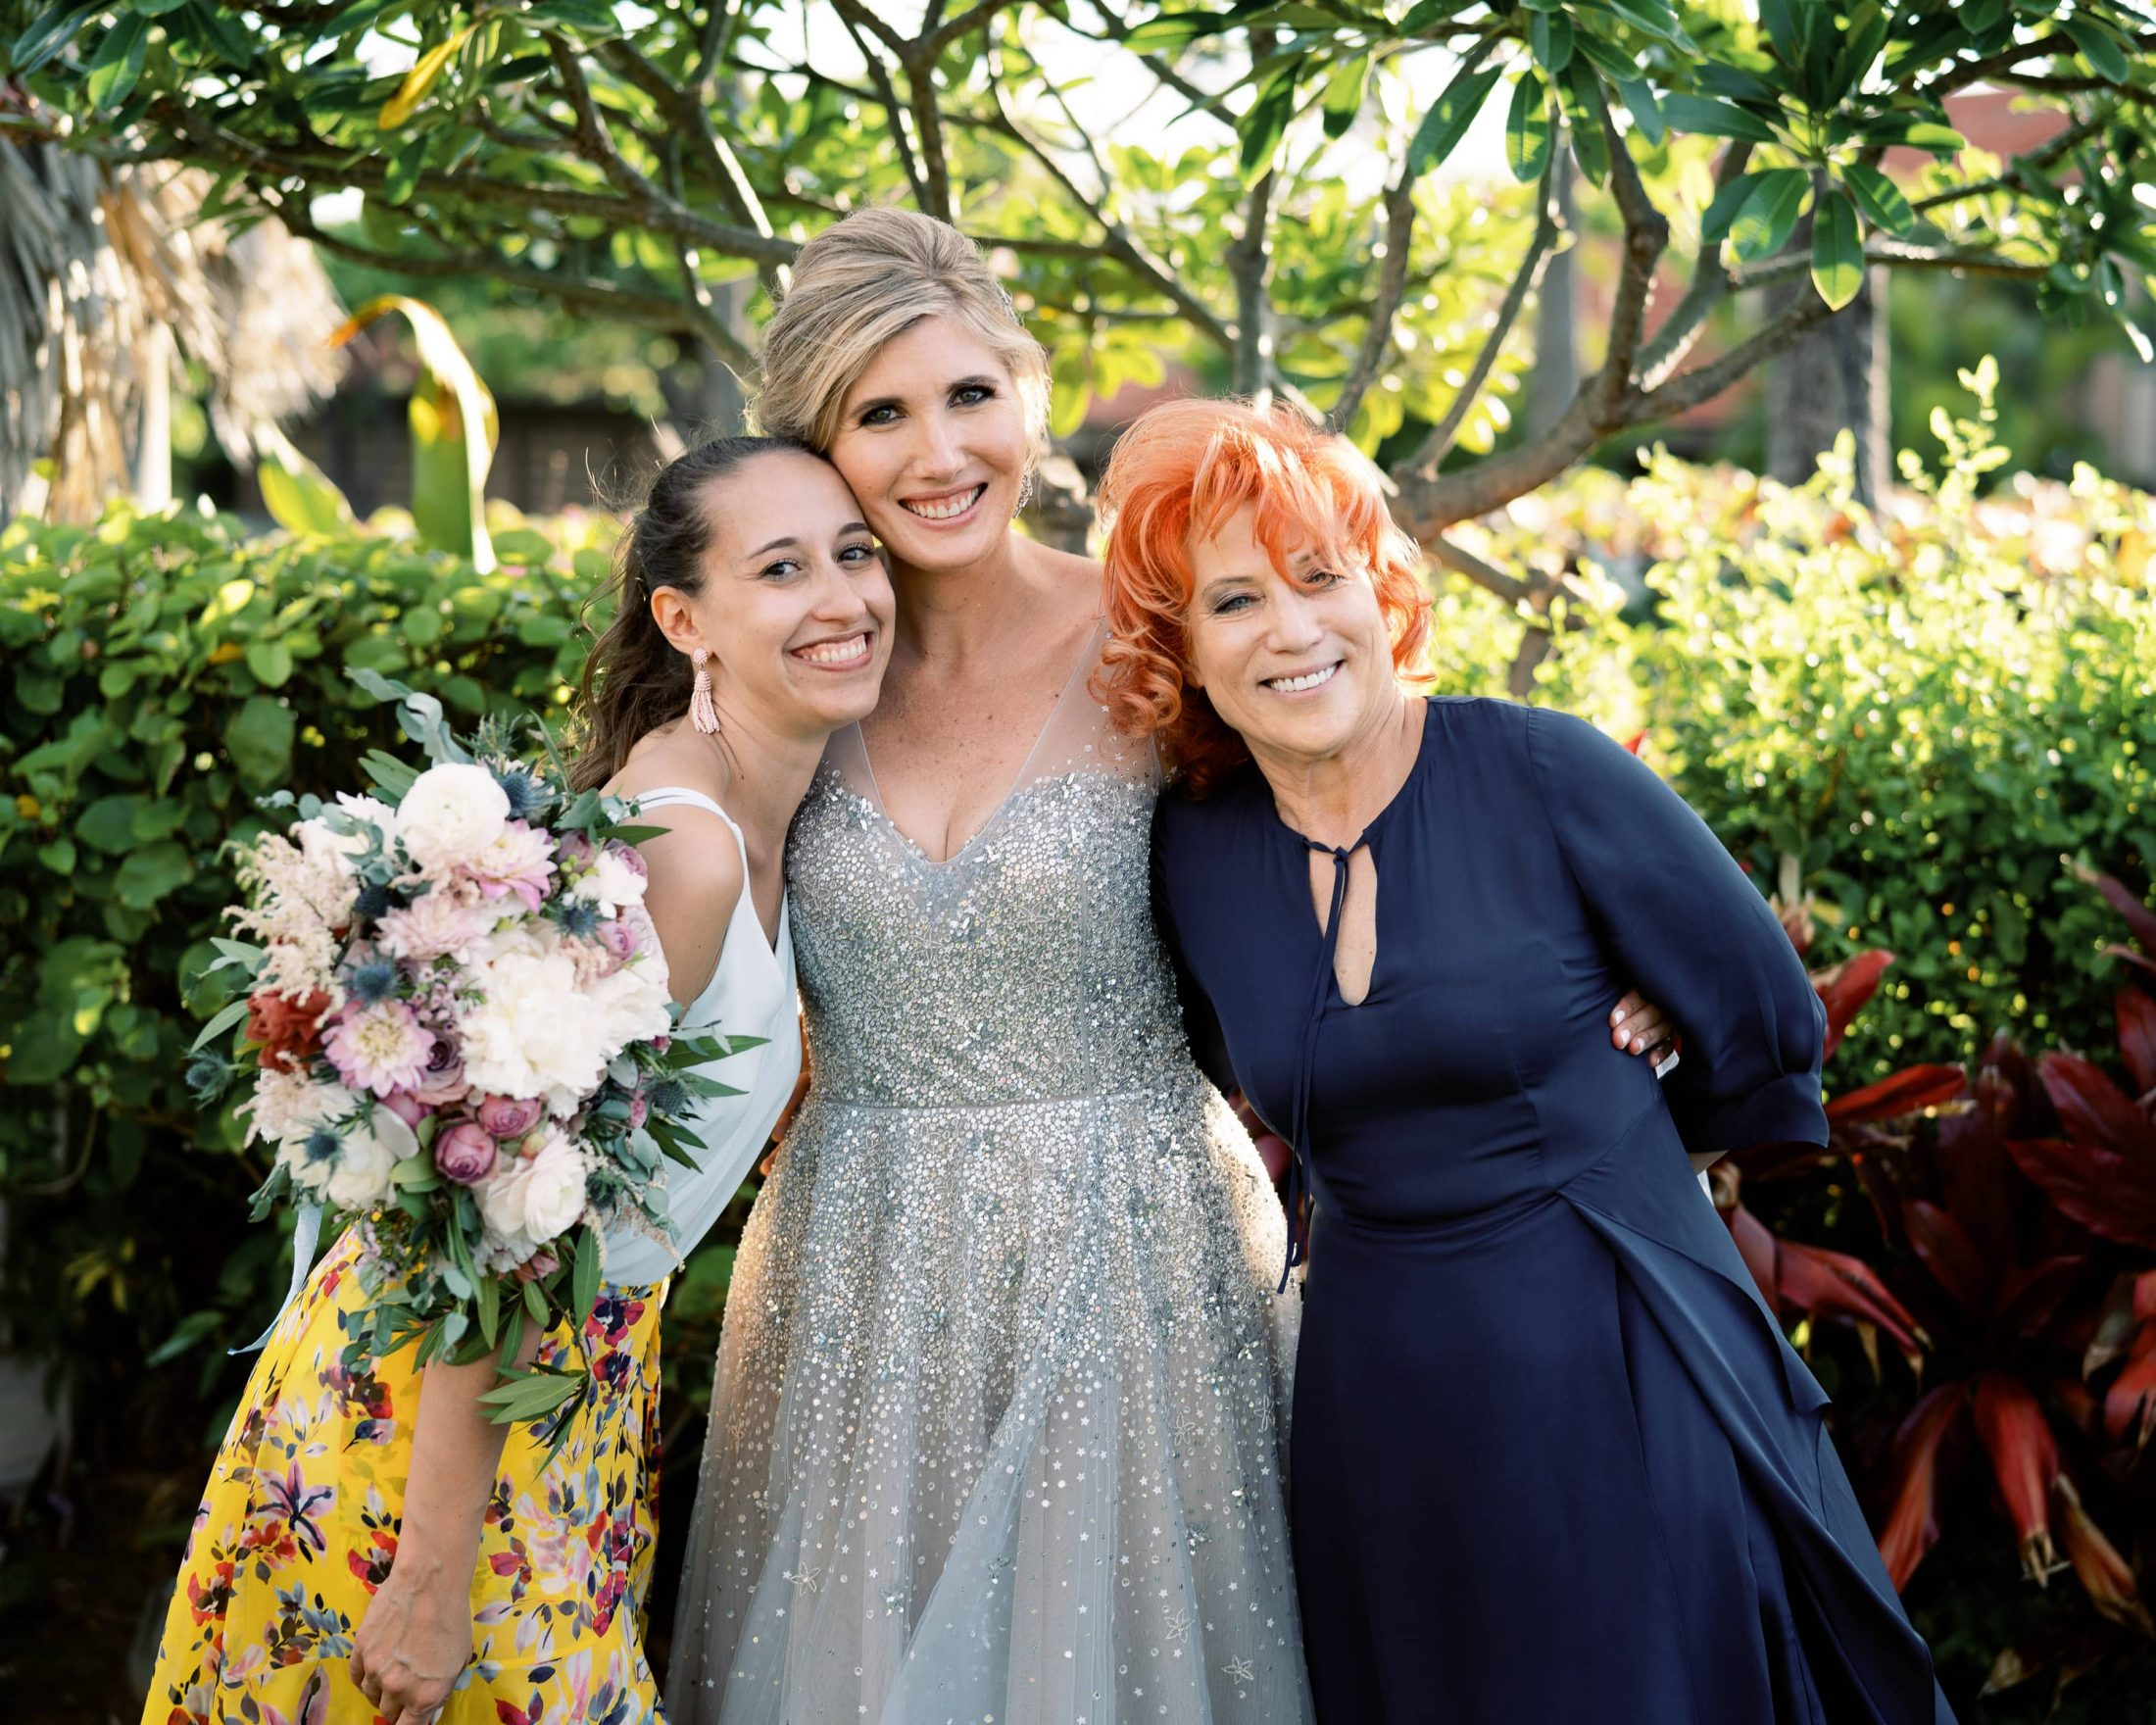 Bride with Marcy Blum and Gabrielle at Maui wedding at Four Seasons Resort Maui in Wailea, Hawaii | Photo by James x Schulze